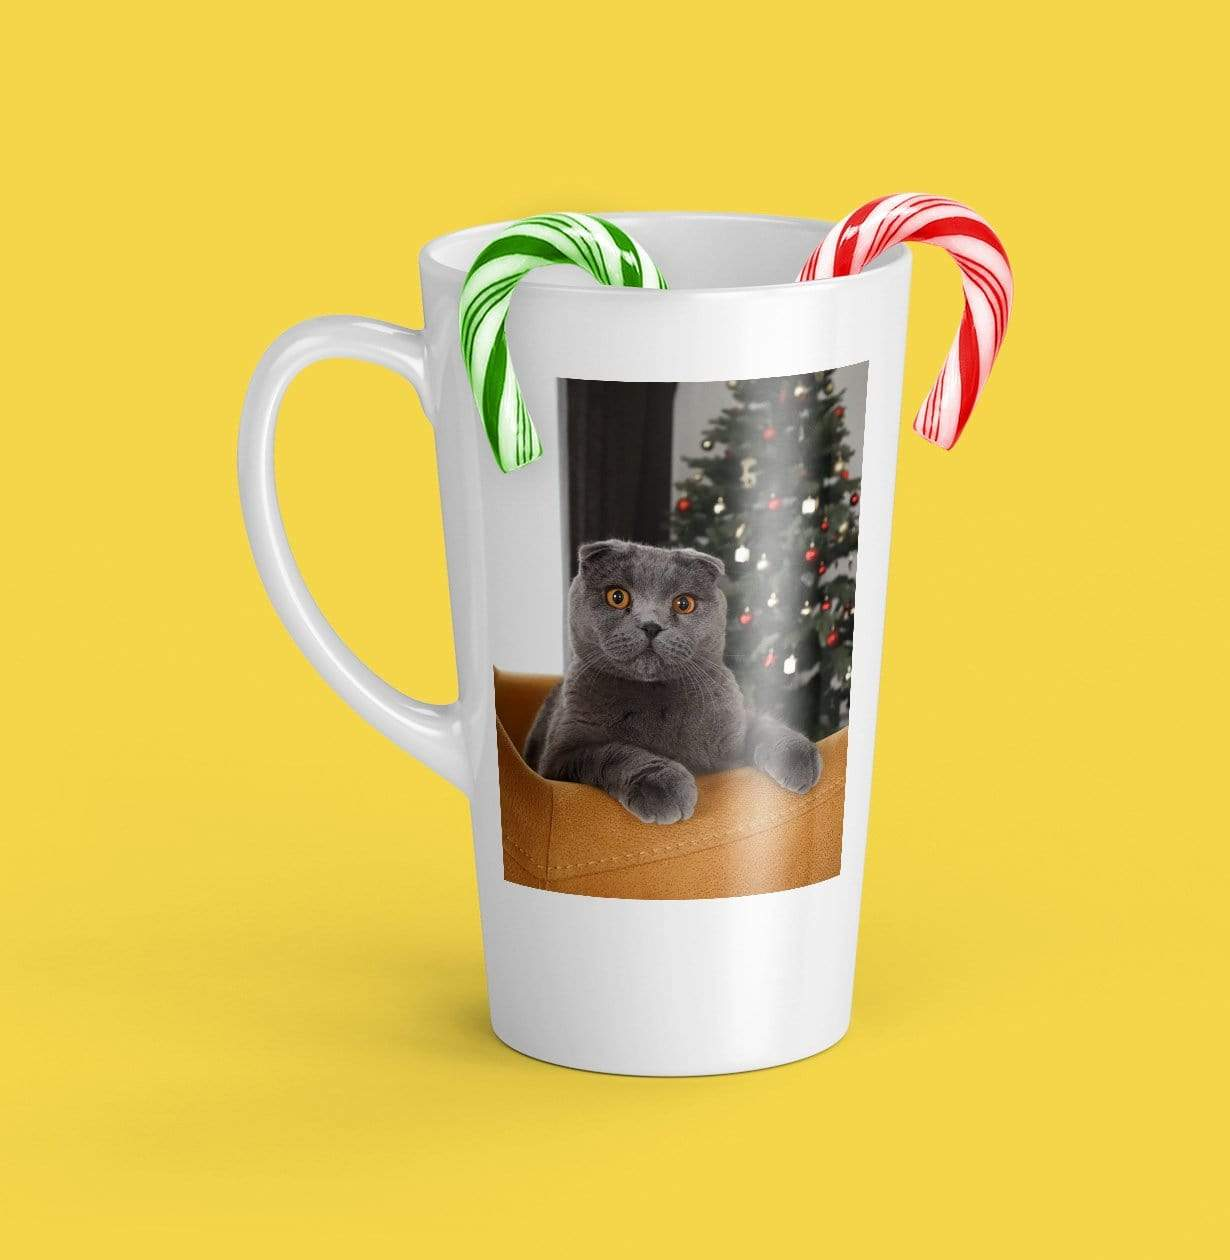 Latte Photo Mug - Photo Gift Ideas Under $25